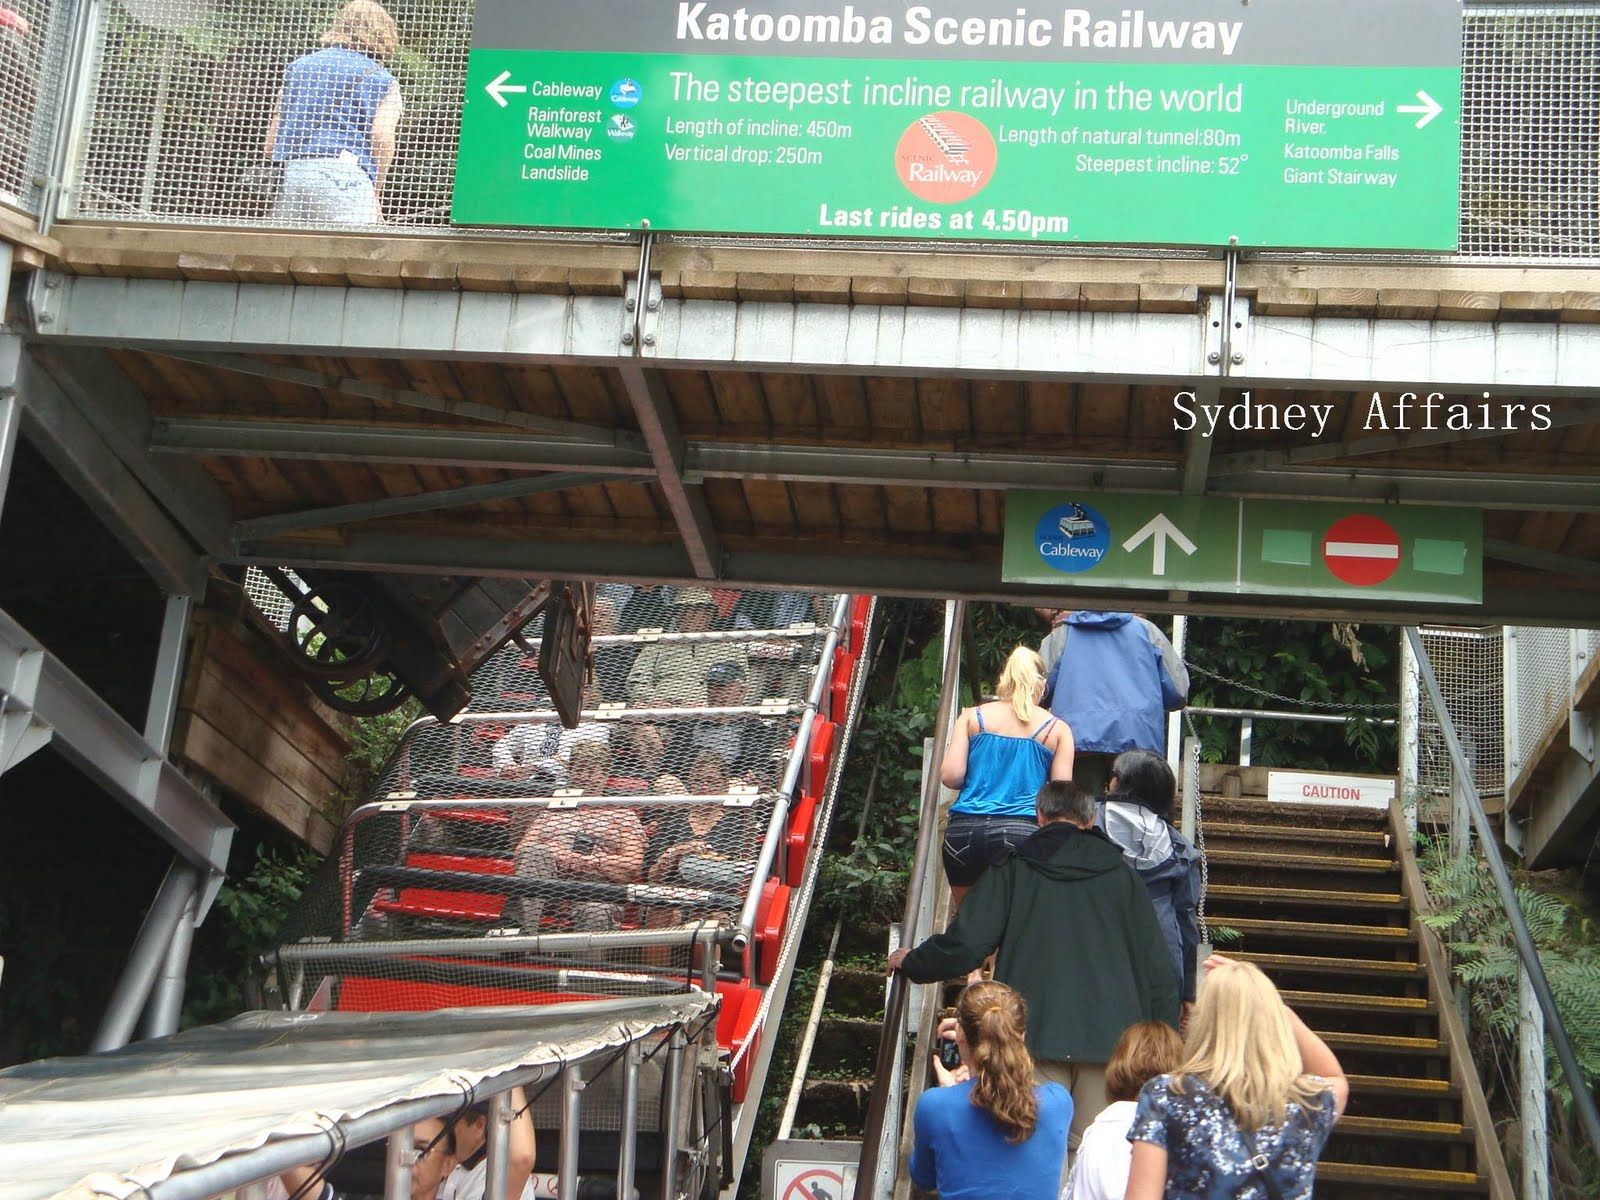 sydney blue mountains train - photo#25